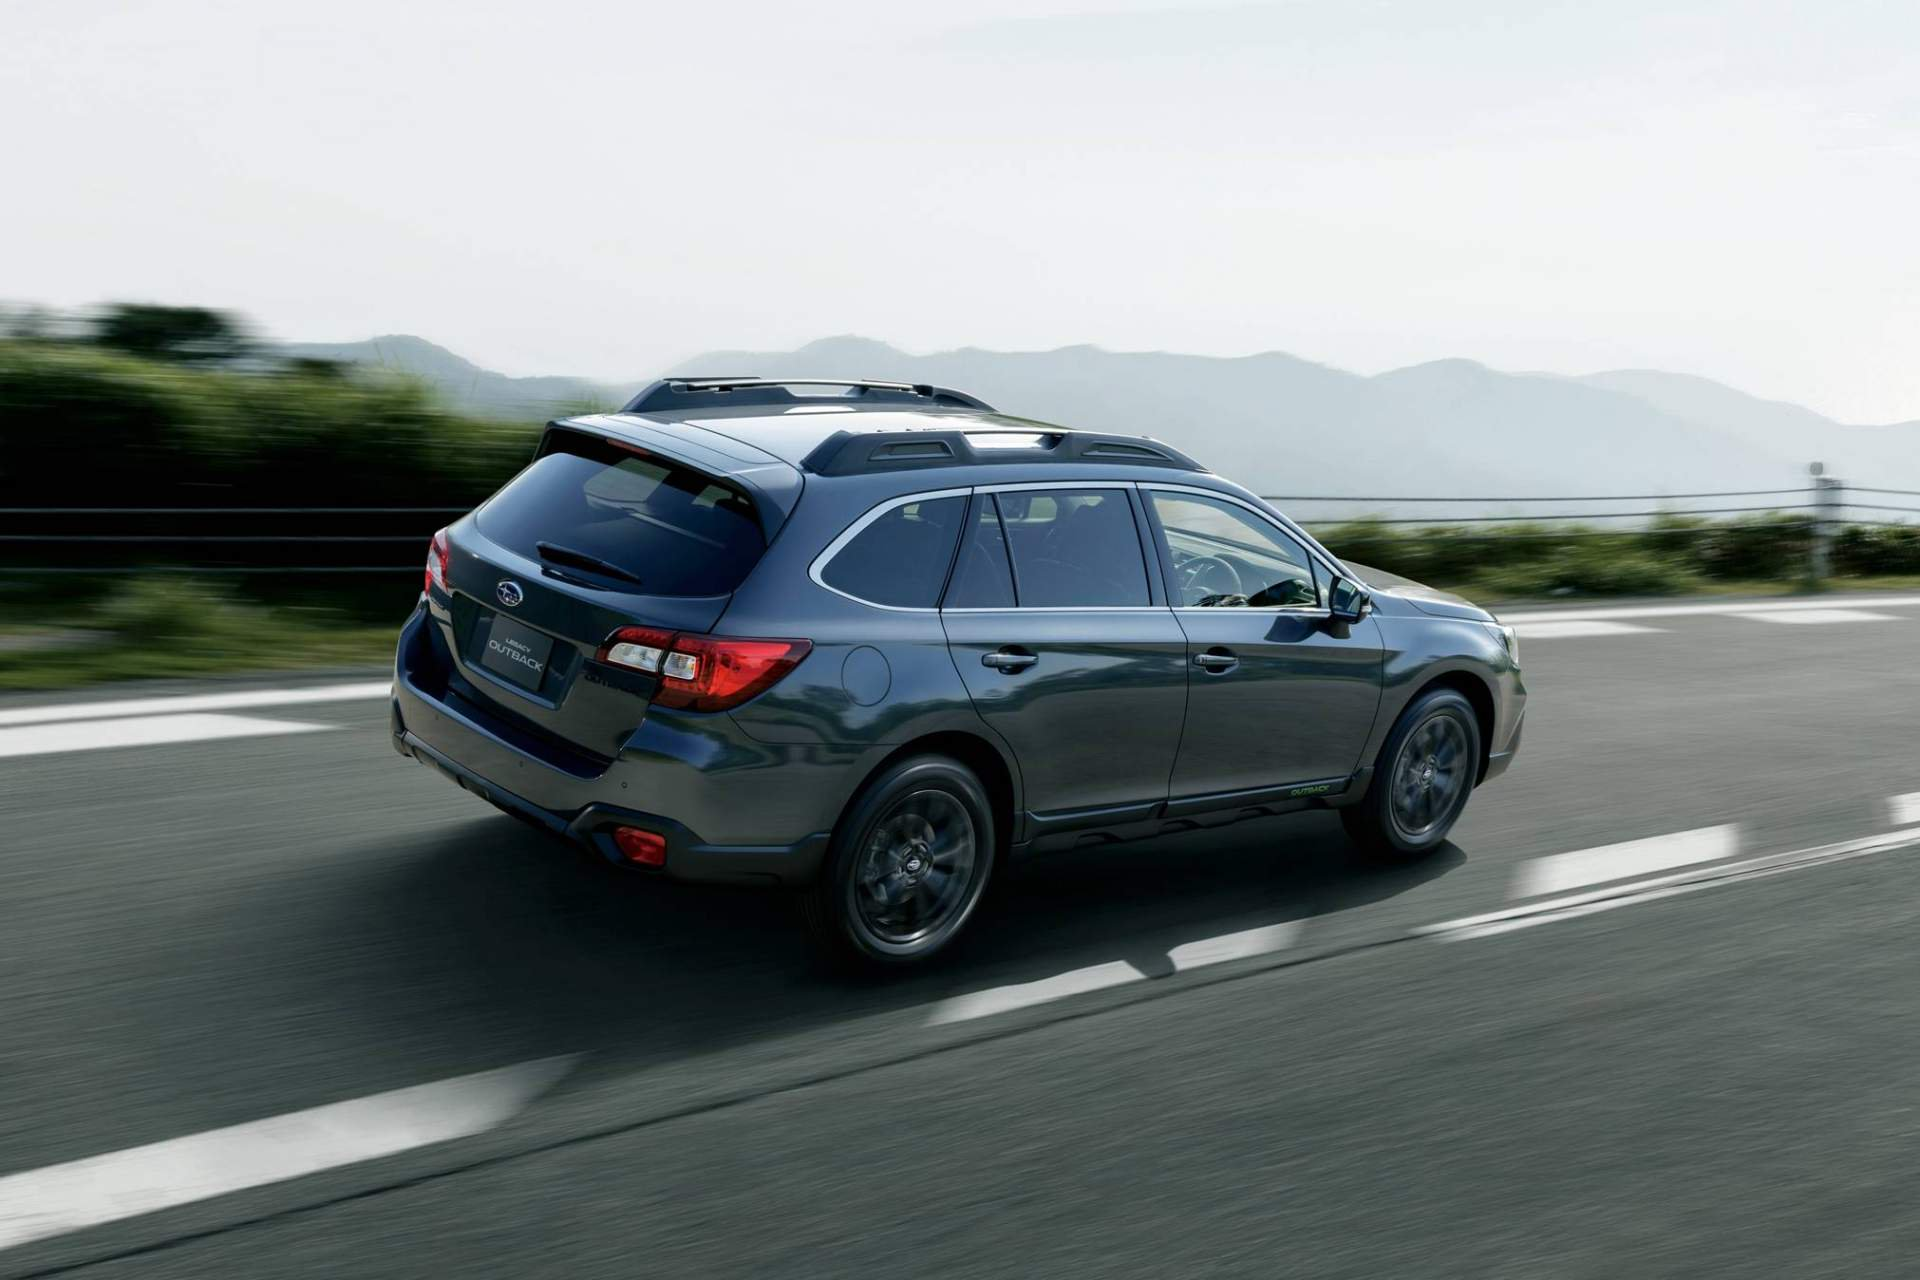 subaru-outback-x-break-dac-biet-11.jpeg